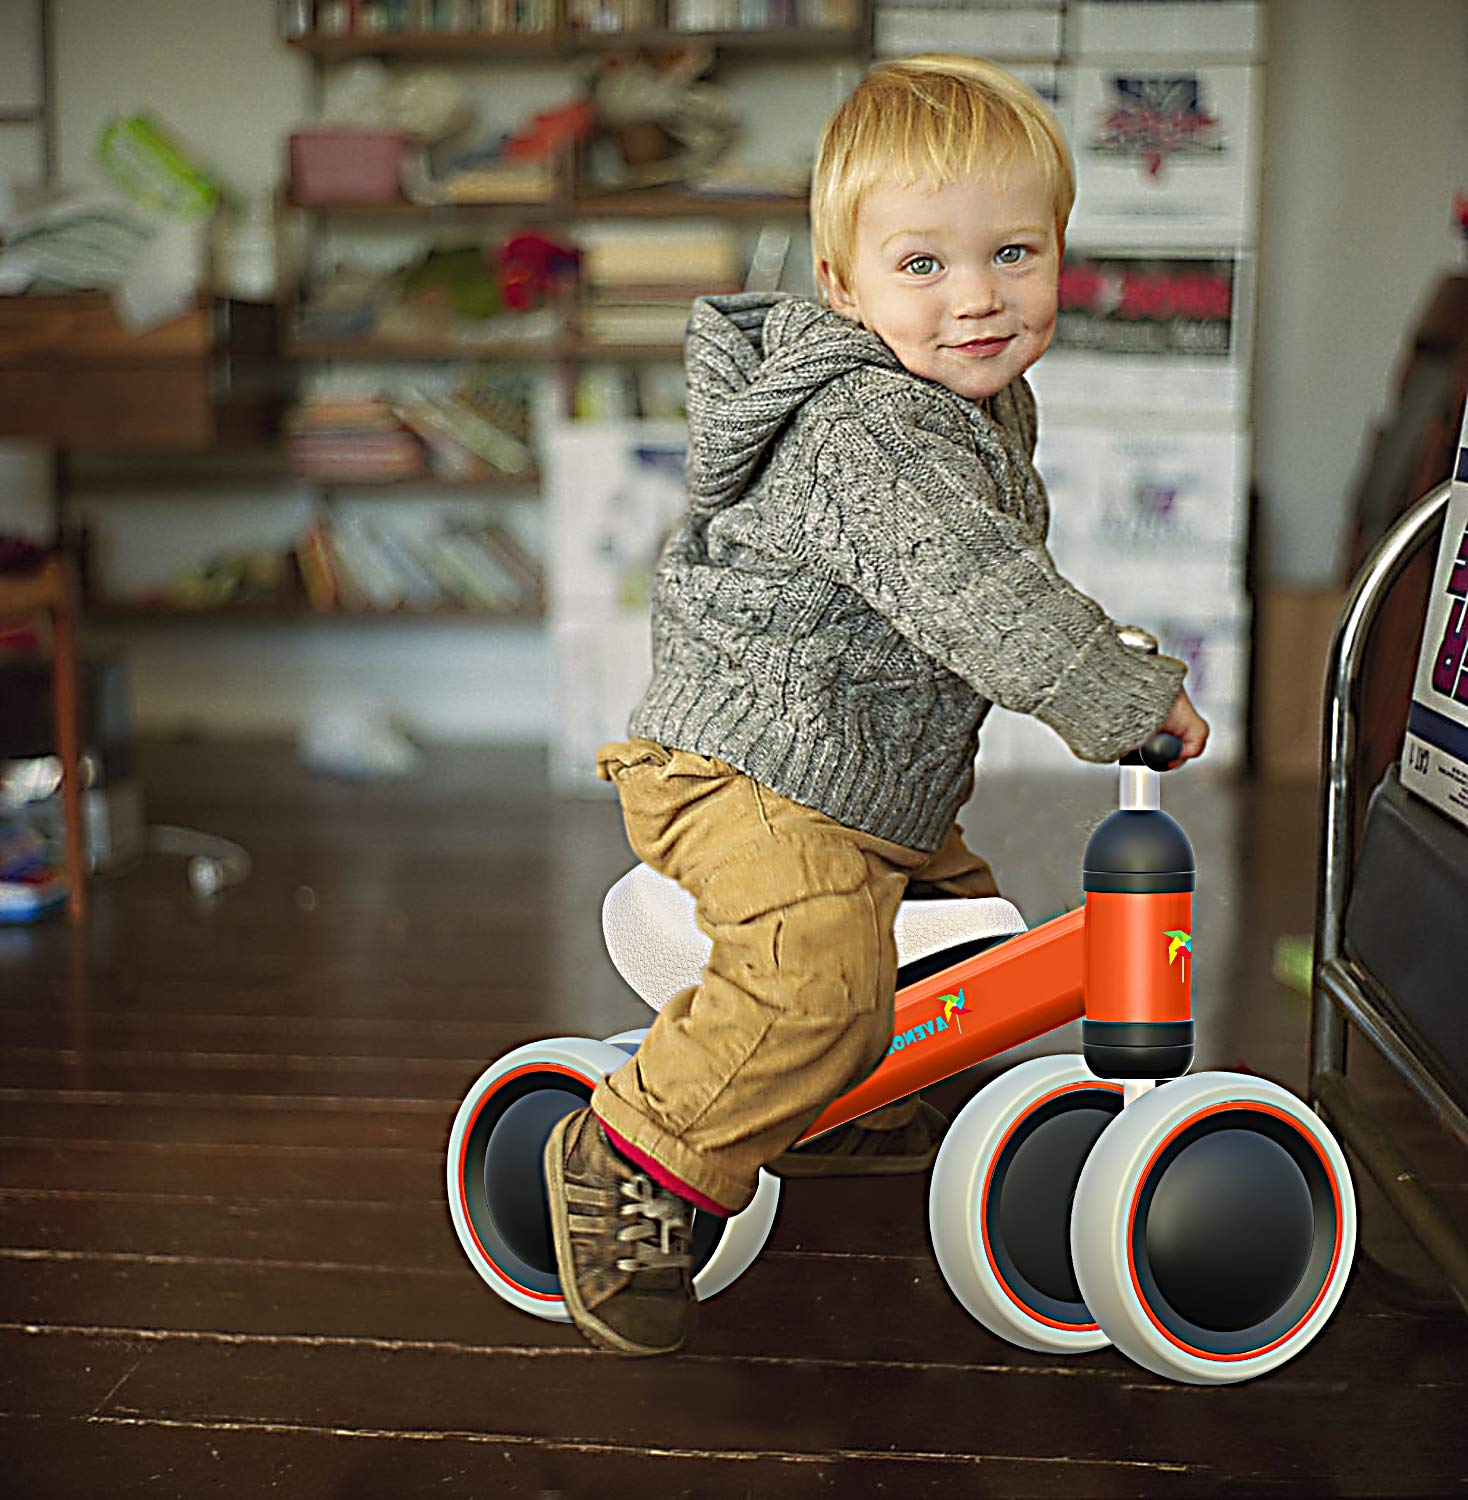 Avenor Baby Balance Bike - Baby Bicycle for 6-24 Months, Sturdy Balance Bike for 1 Year Old, Perfect as First Bike or Birthday Gift, Safe Riding Toys for 1 Year Old Boy Girl Ideal Baby Bike (Orange) by Avenor (Image #6)